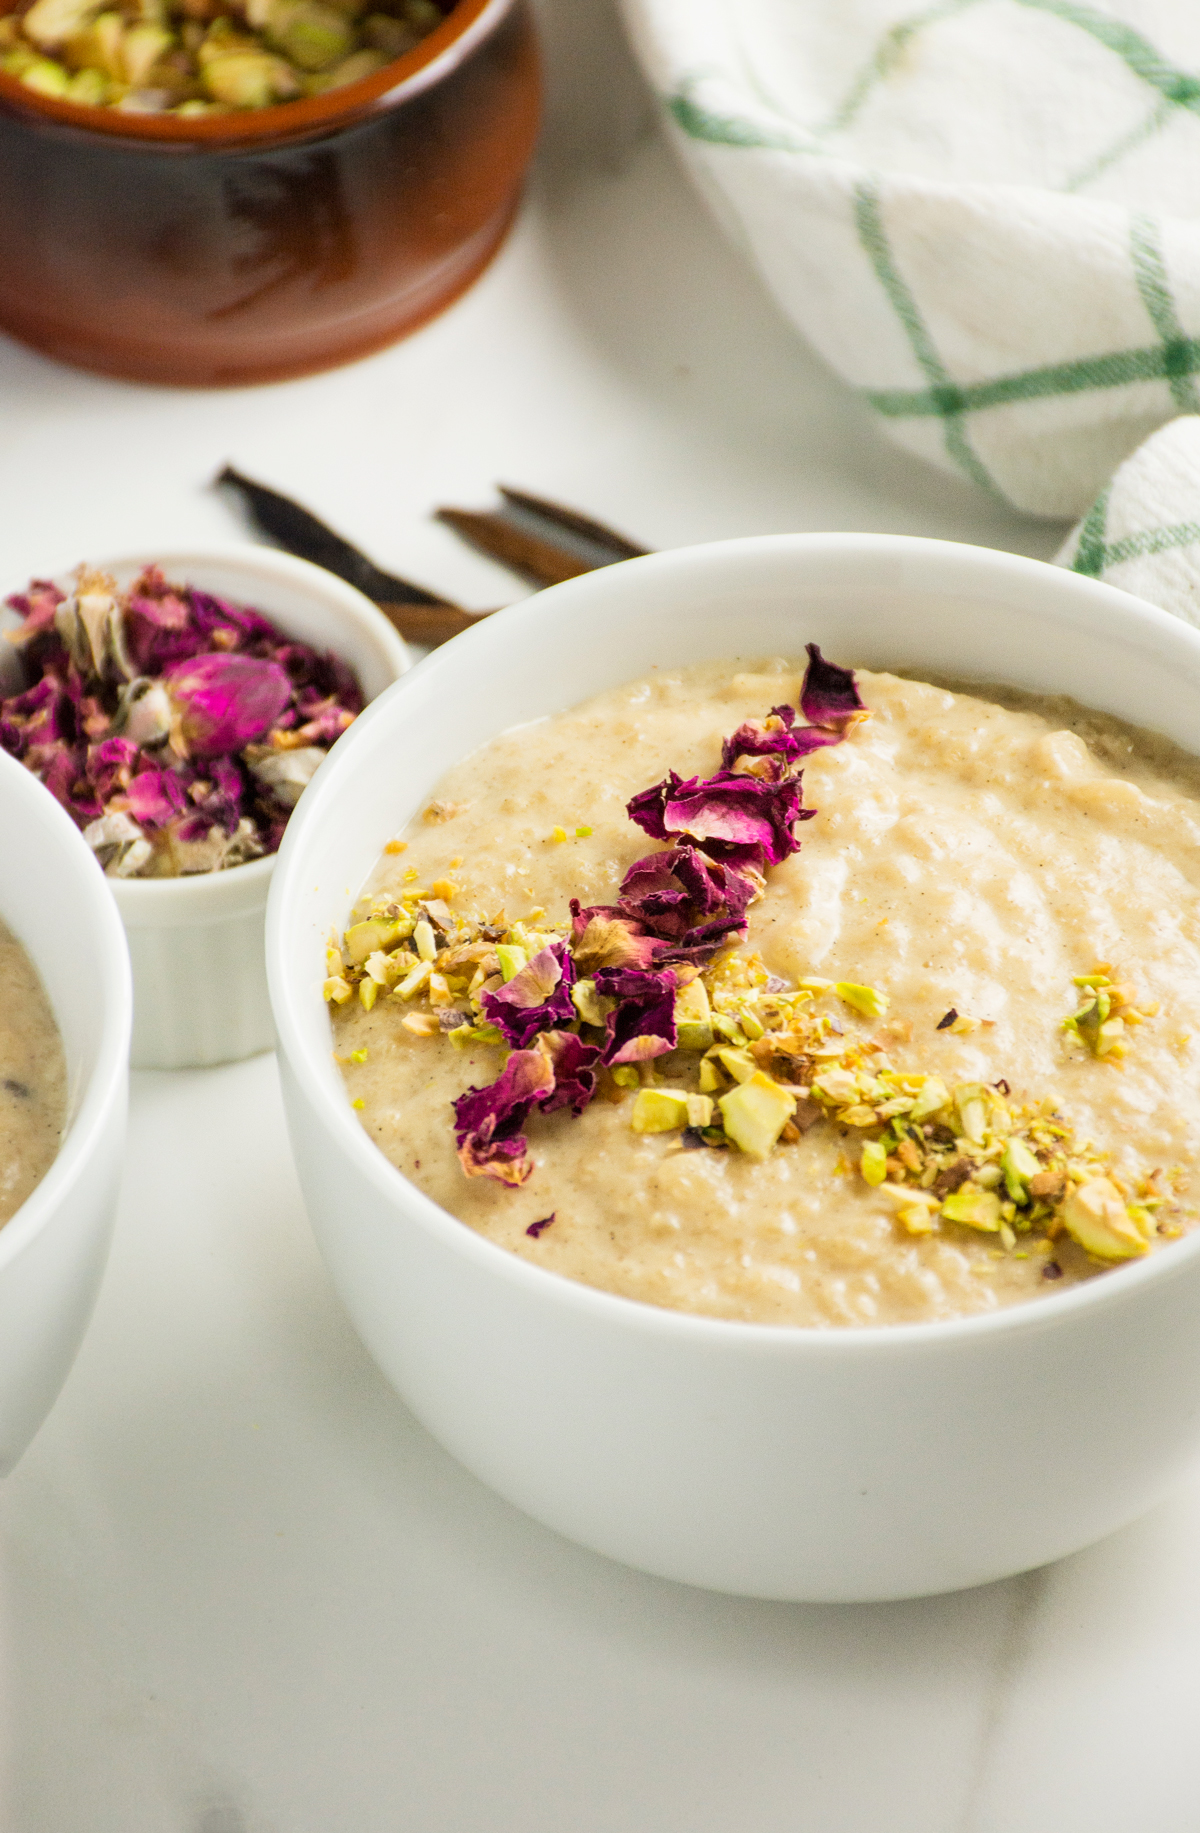 Breakfast Recipes 2016 3 25 Breakfast Cardamom Rice Pudding >> Rose Scented Rice Pudding With Vanilla Cardamom Pistachio